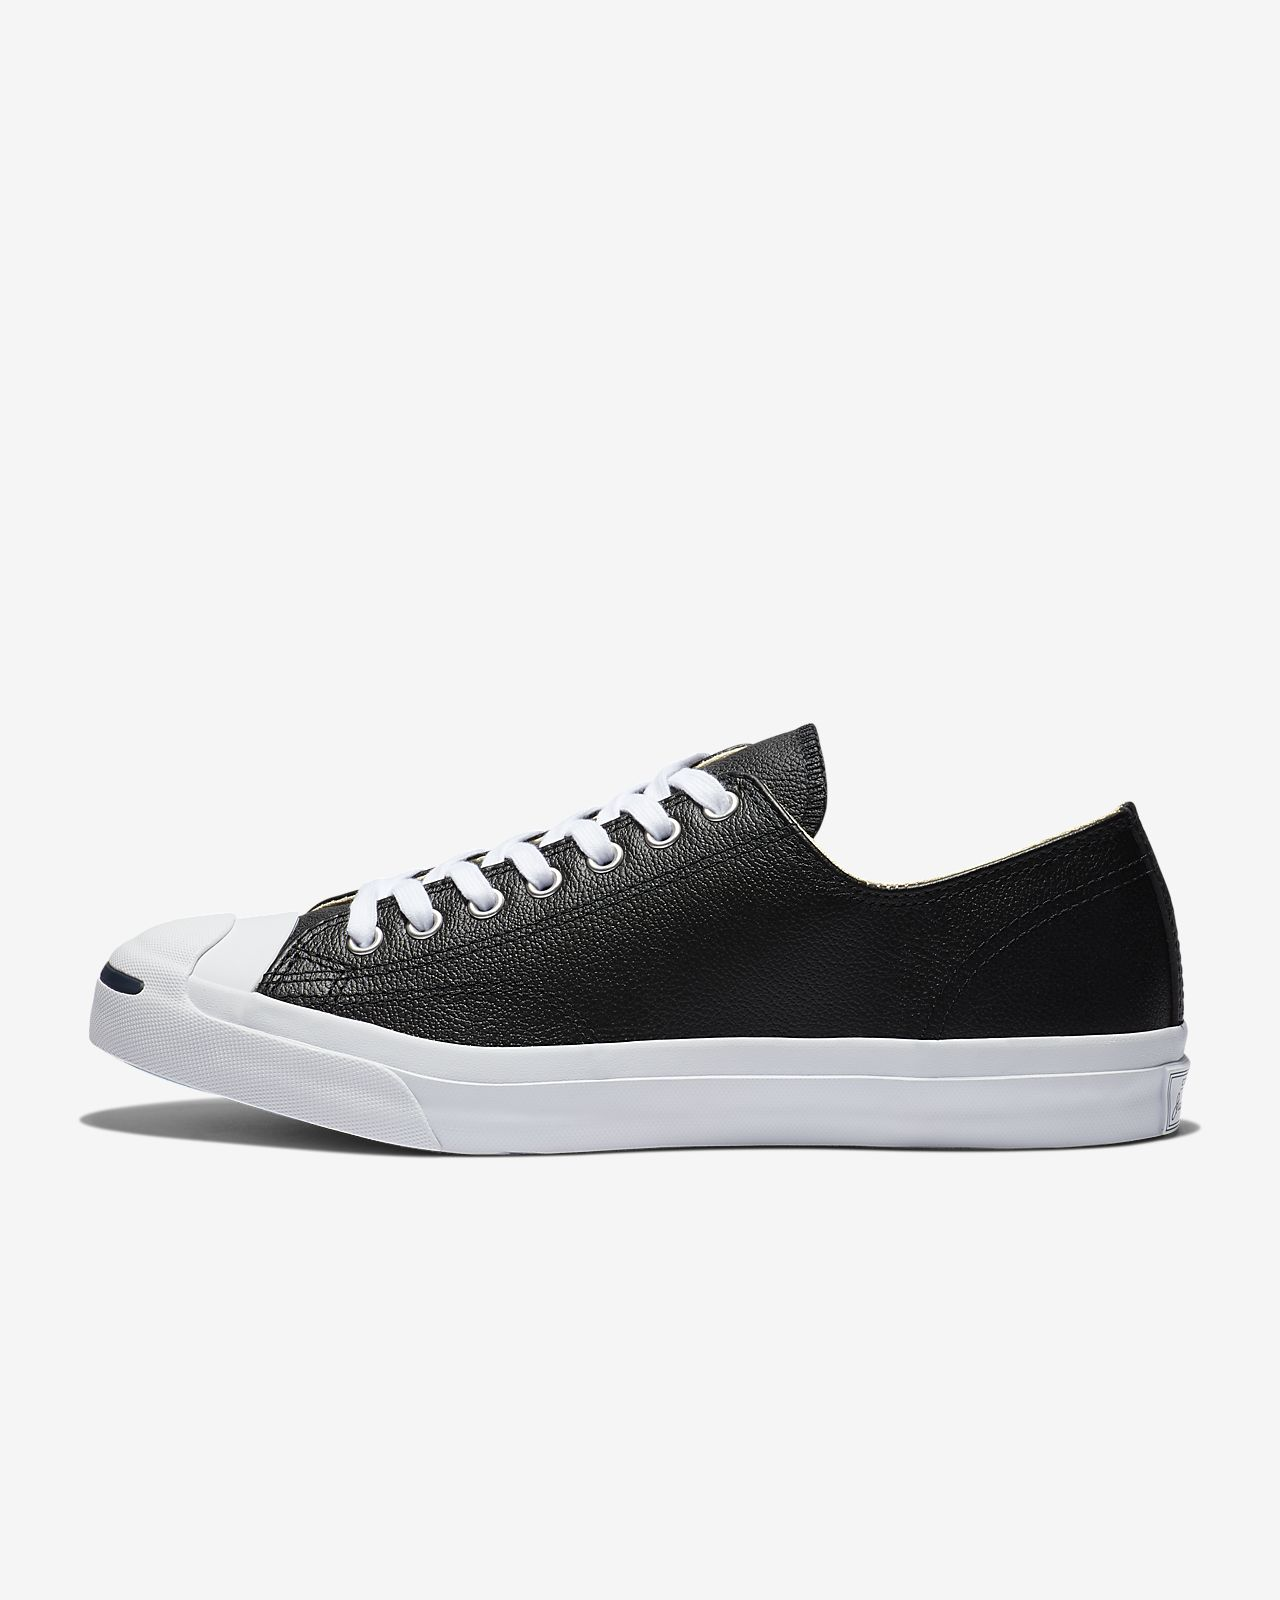 Converse Jack Purcell Tumbled Leather Low Top Unisex Shoe